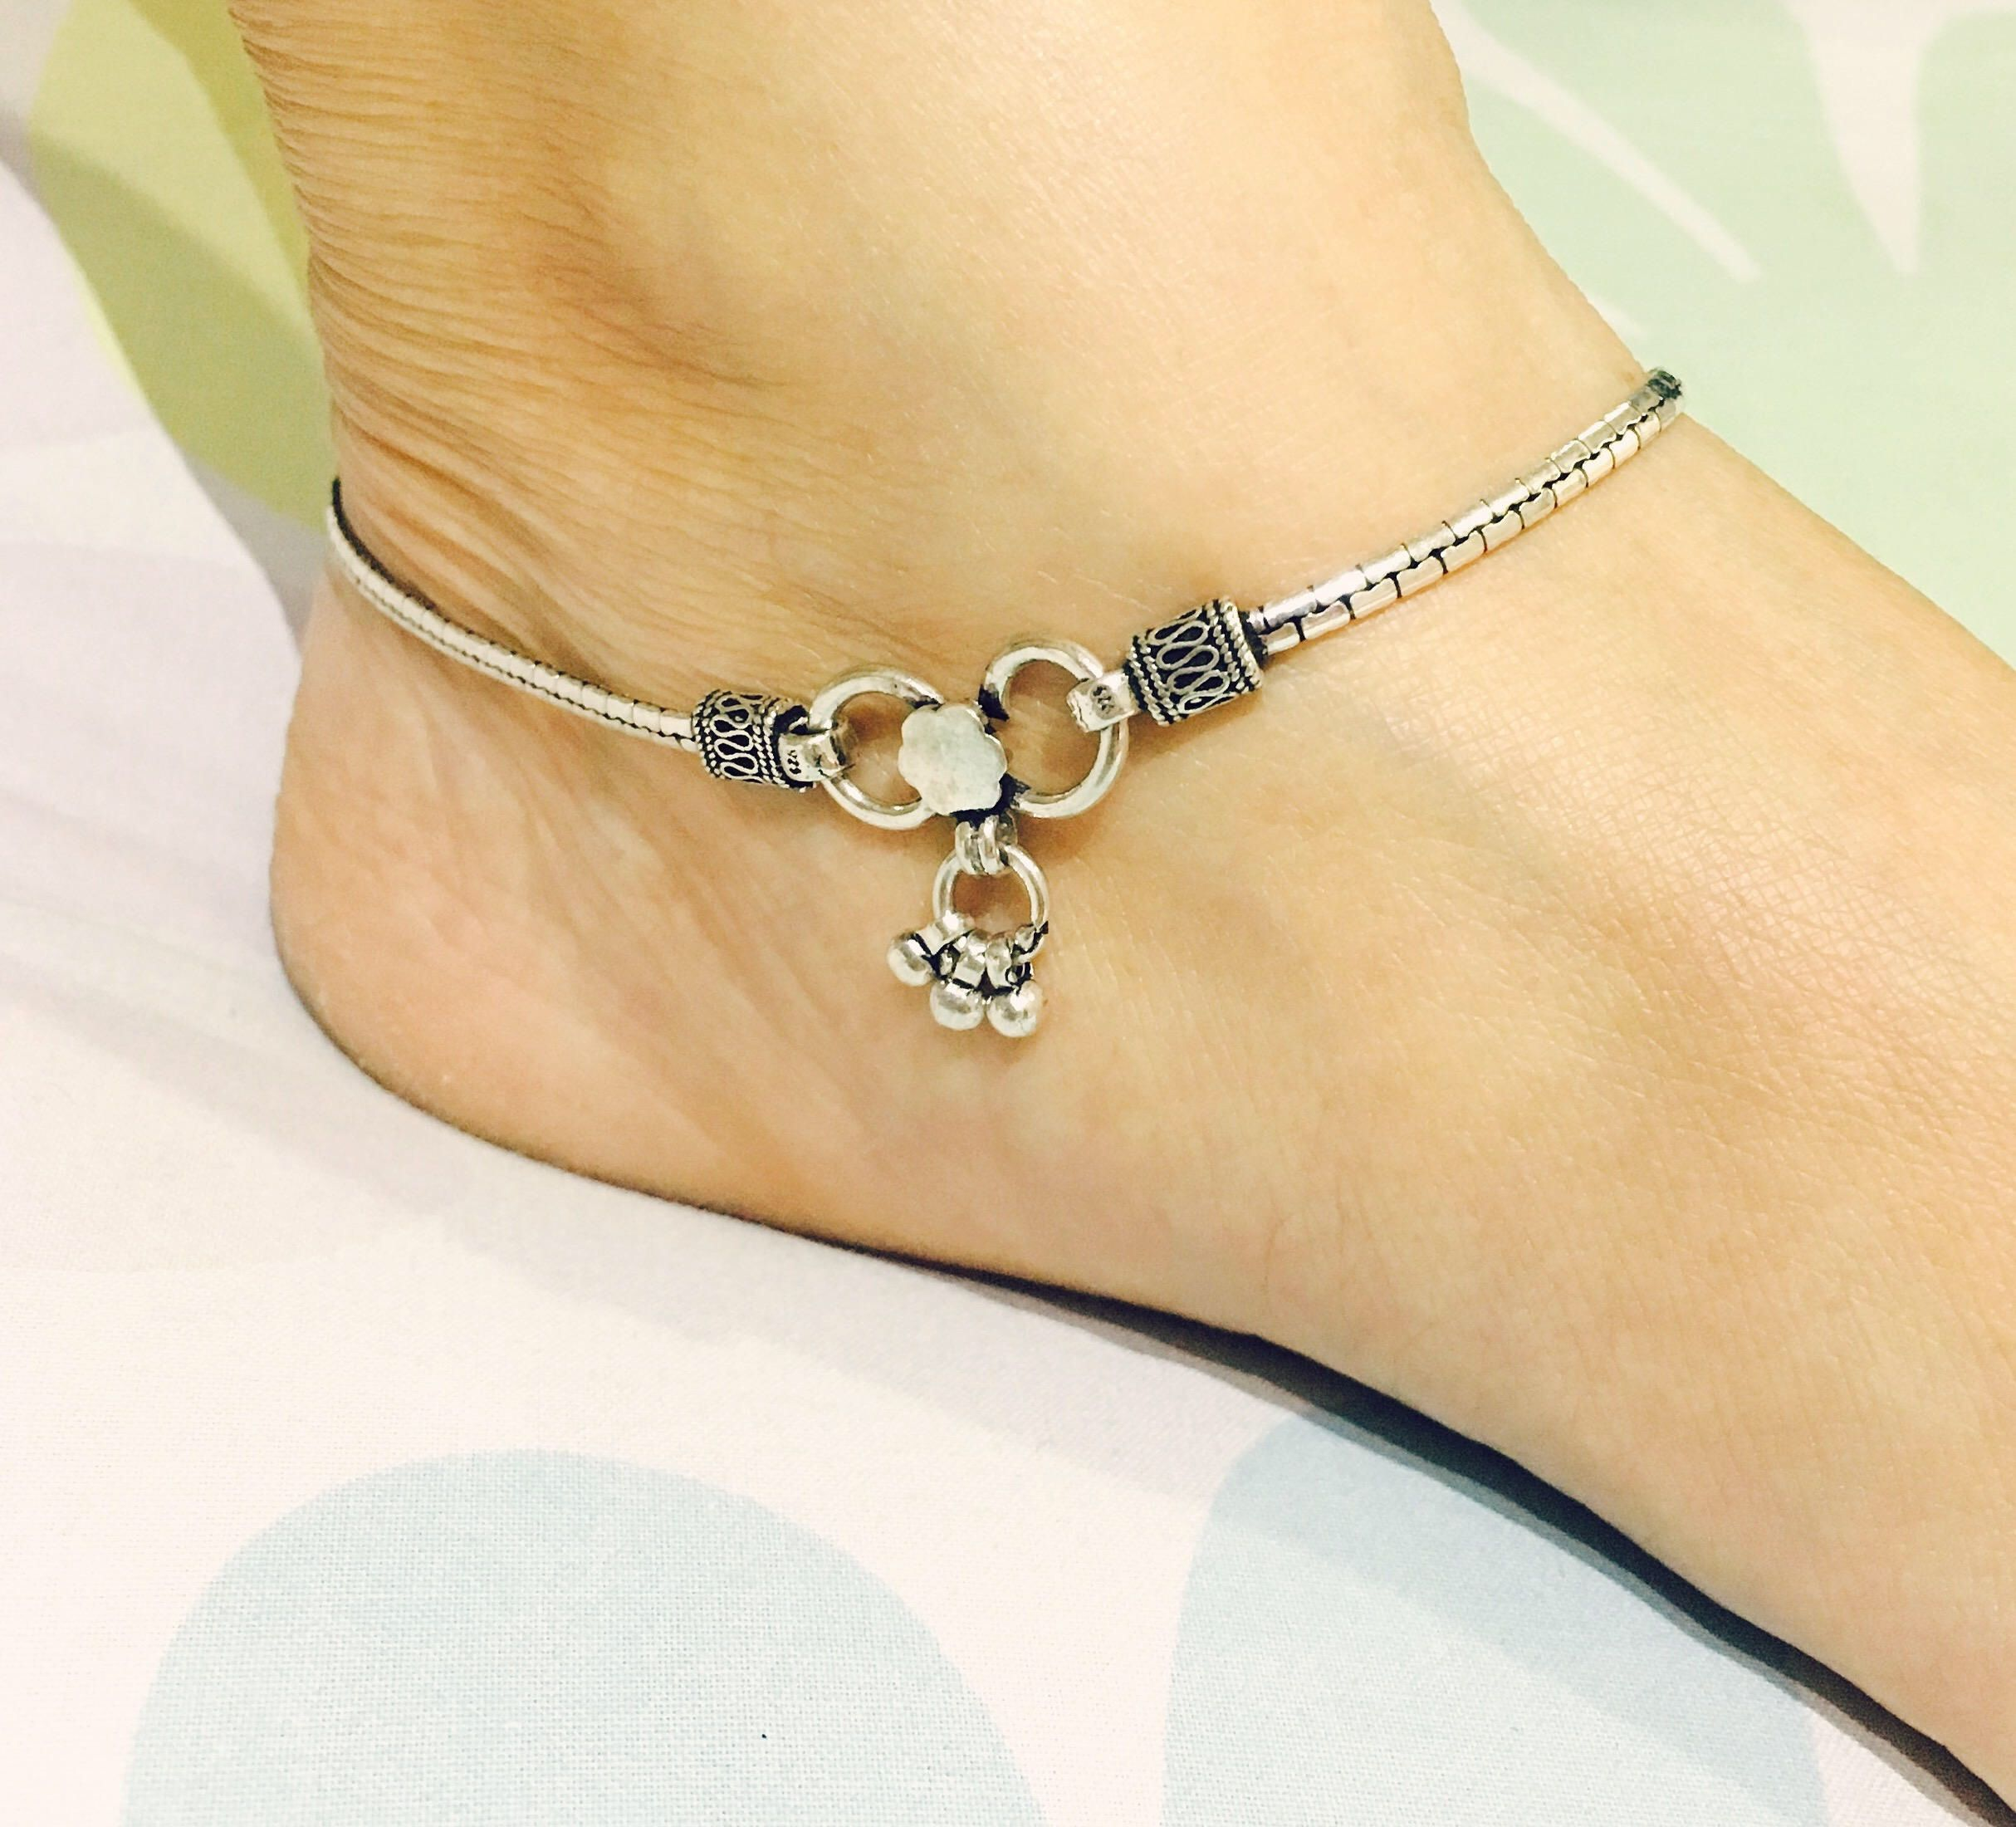 dfoo sterling il silver jewellery anklet india fullxfull heart c tribal anklets